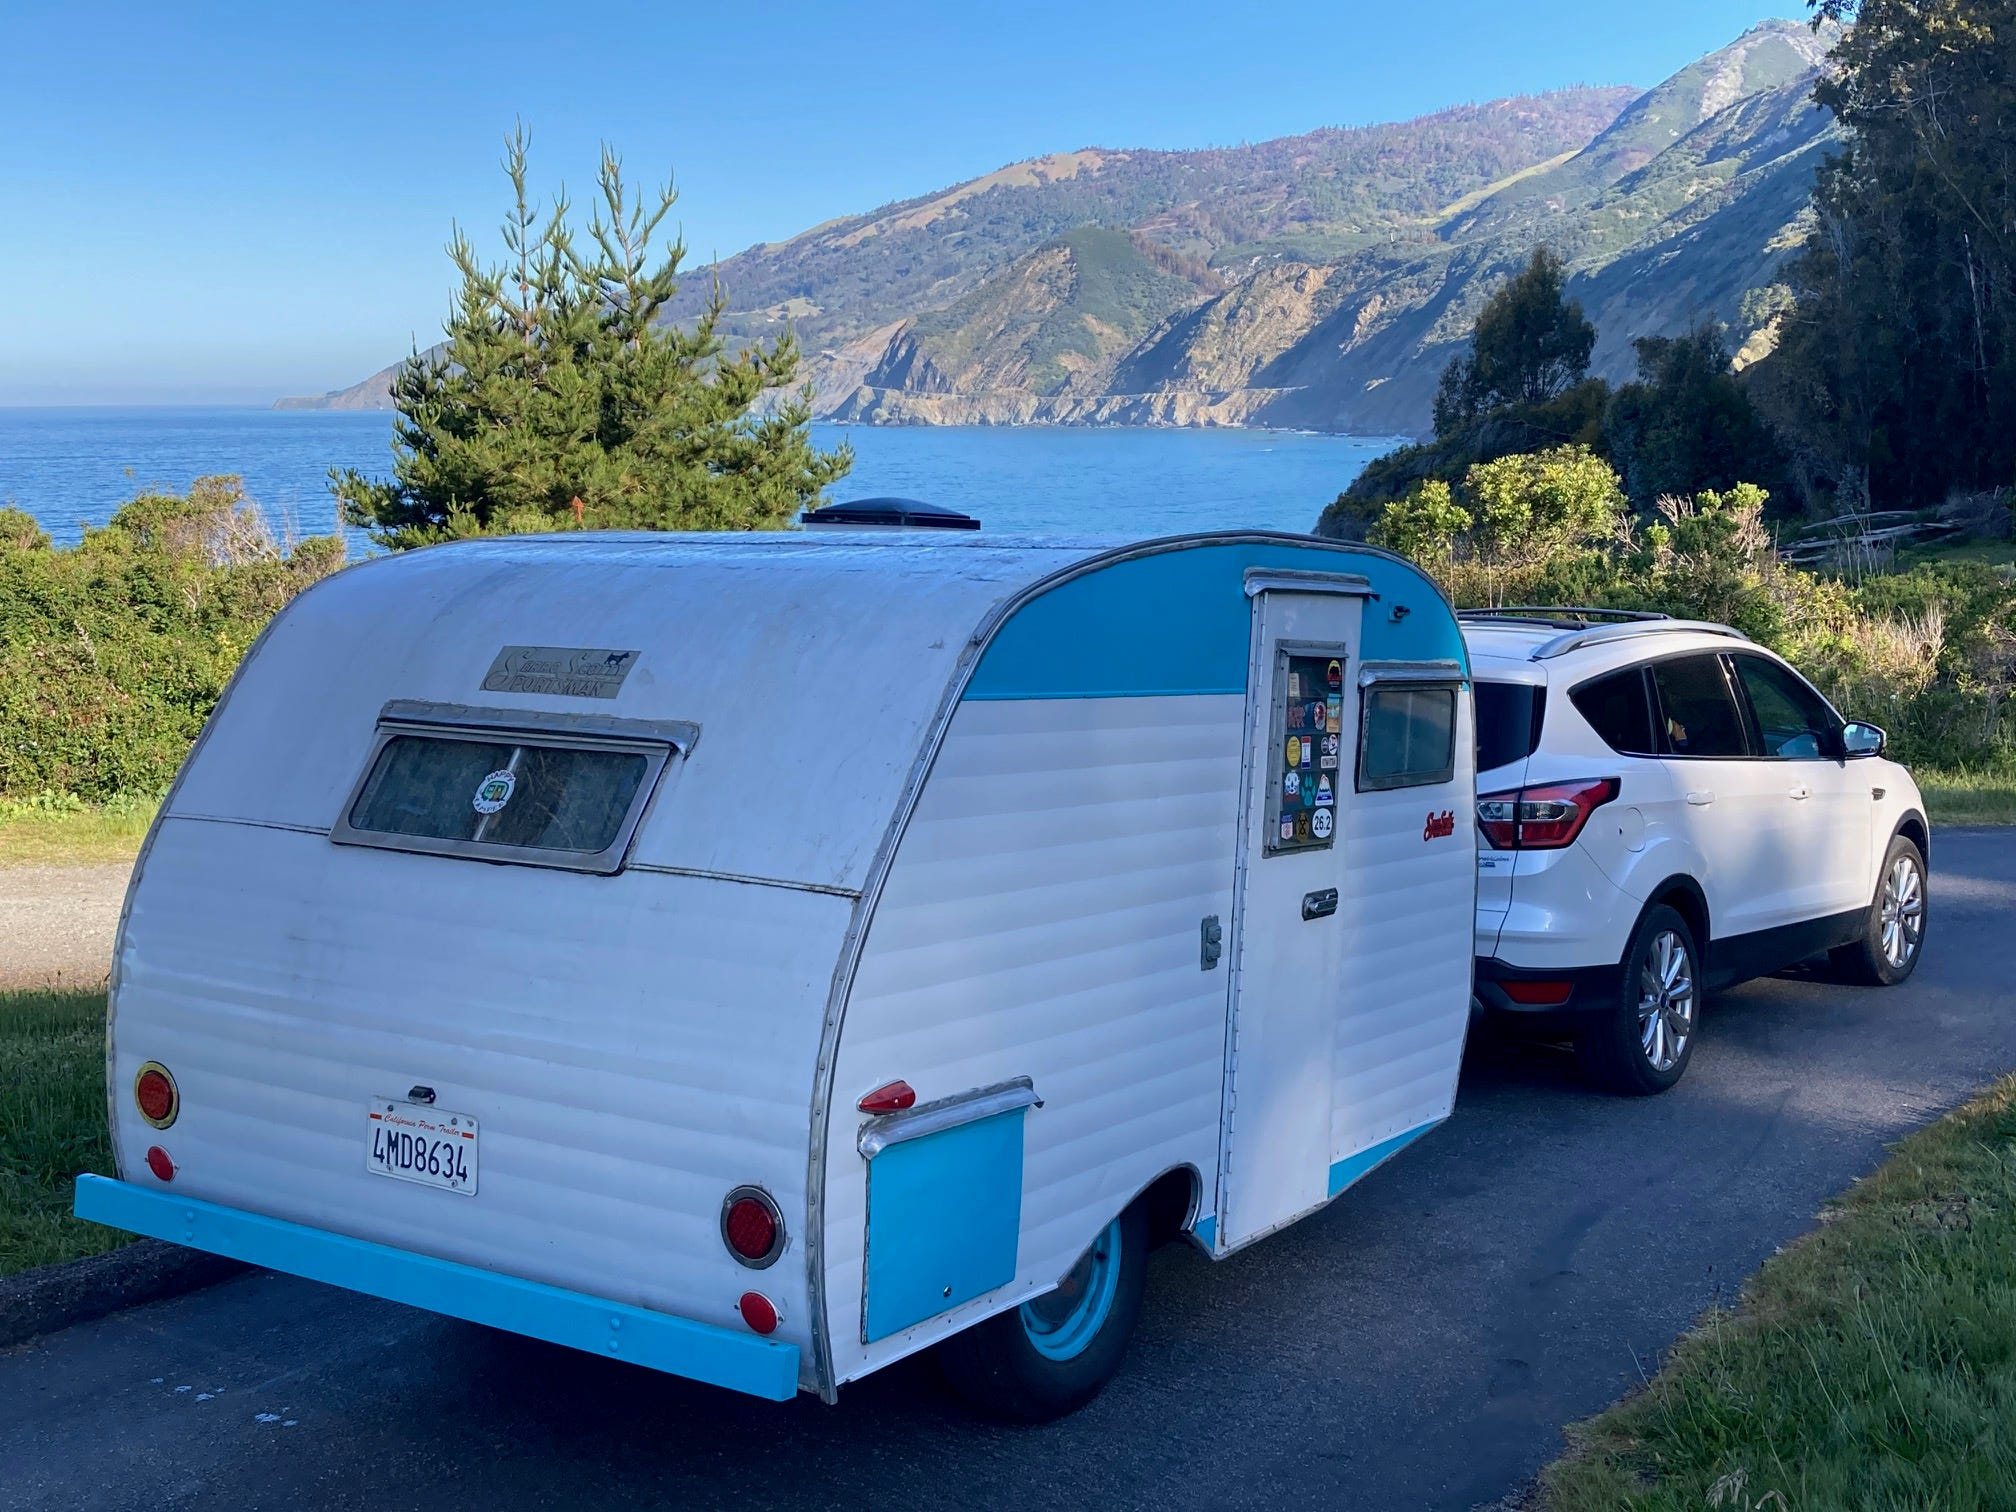 Thinking of buying a vintage camper? Keep an eye out for these red flags